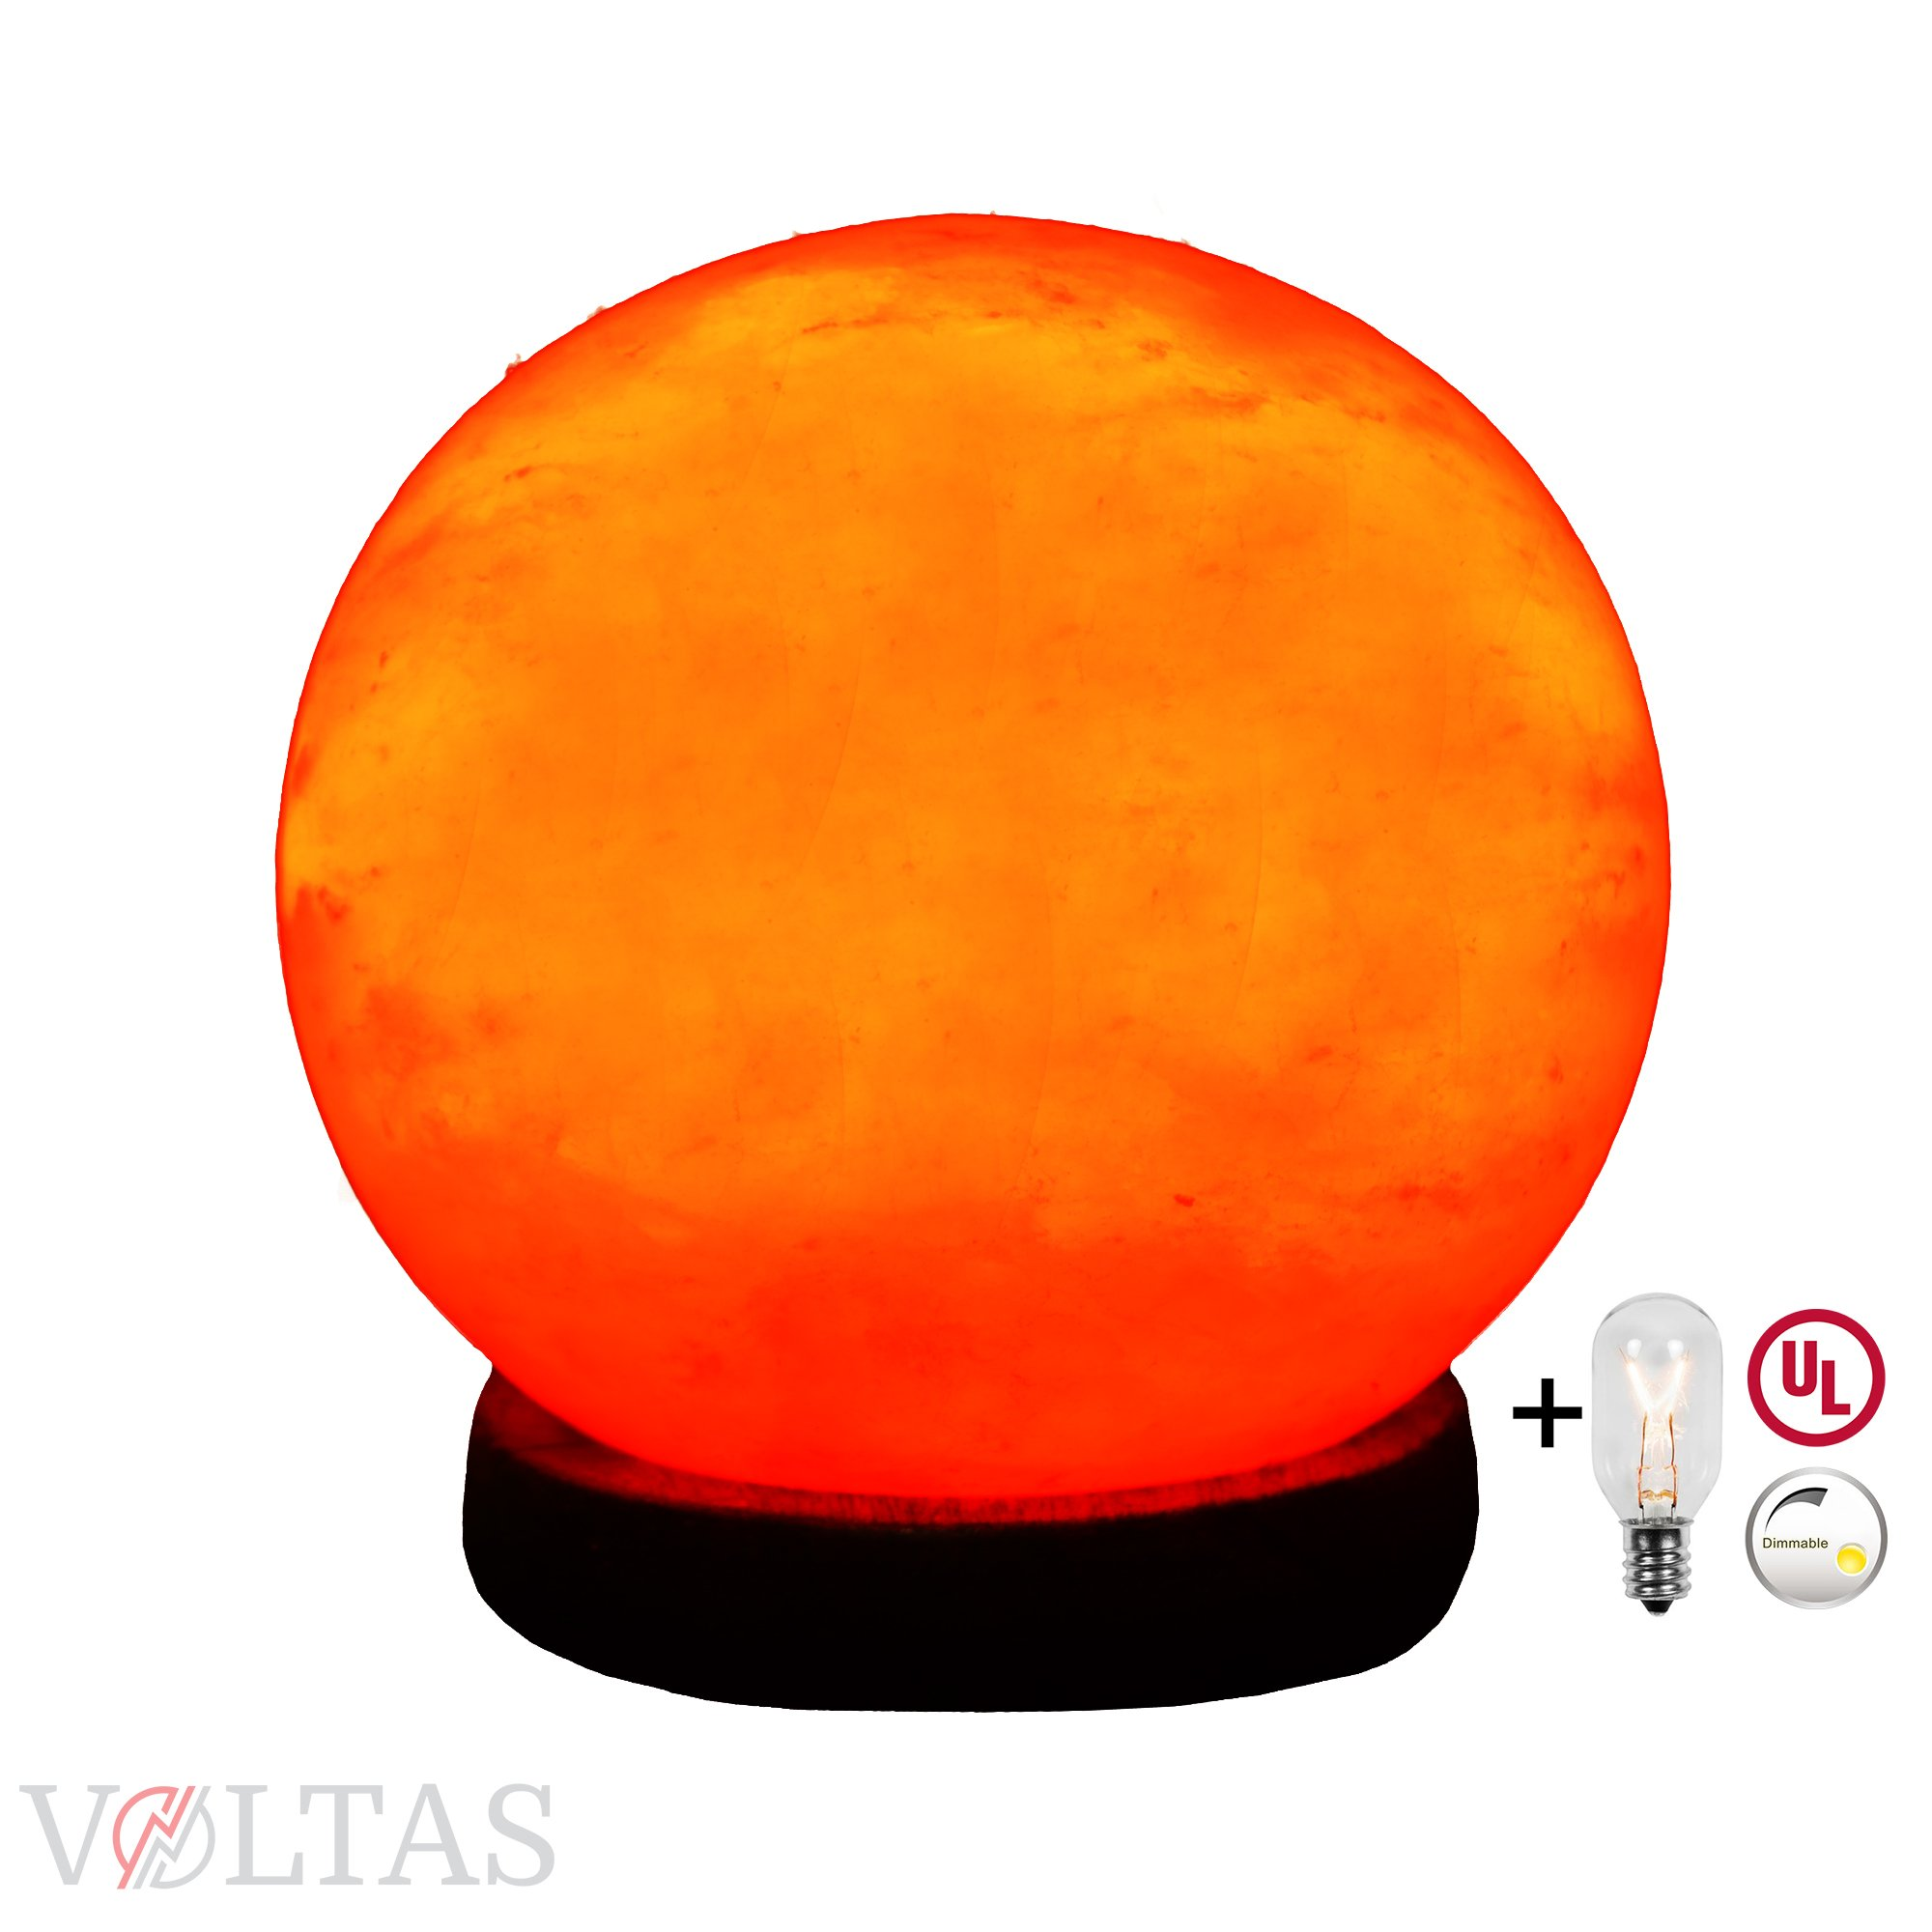 Voltas Salt Lamp Globe is carved out of Premium Salt Crystal, comes with a Dimmer control switch, 6ft UL listed cord and two 15W bulbs one for the Globe lamp and one as a FREE spare replacement.